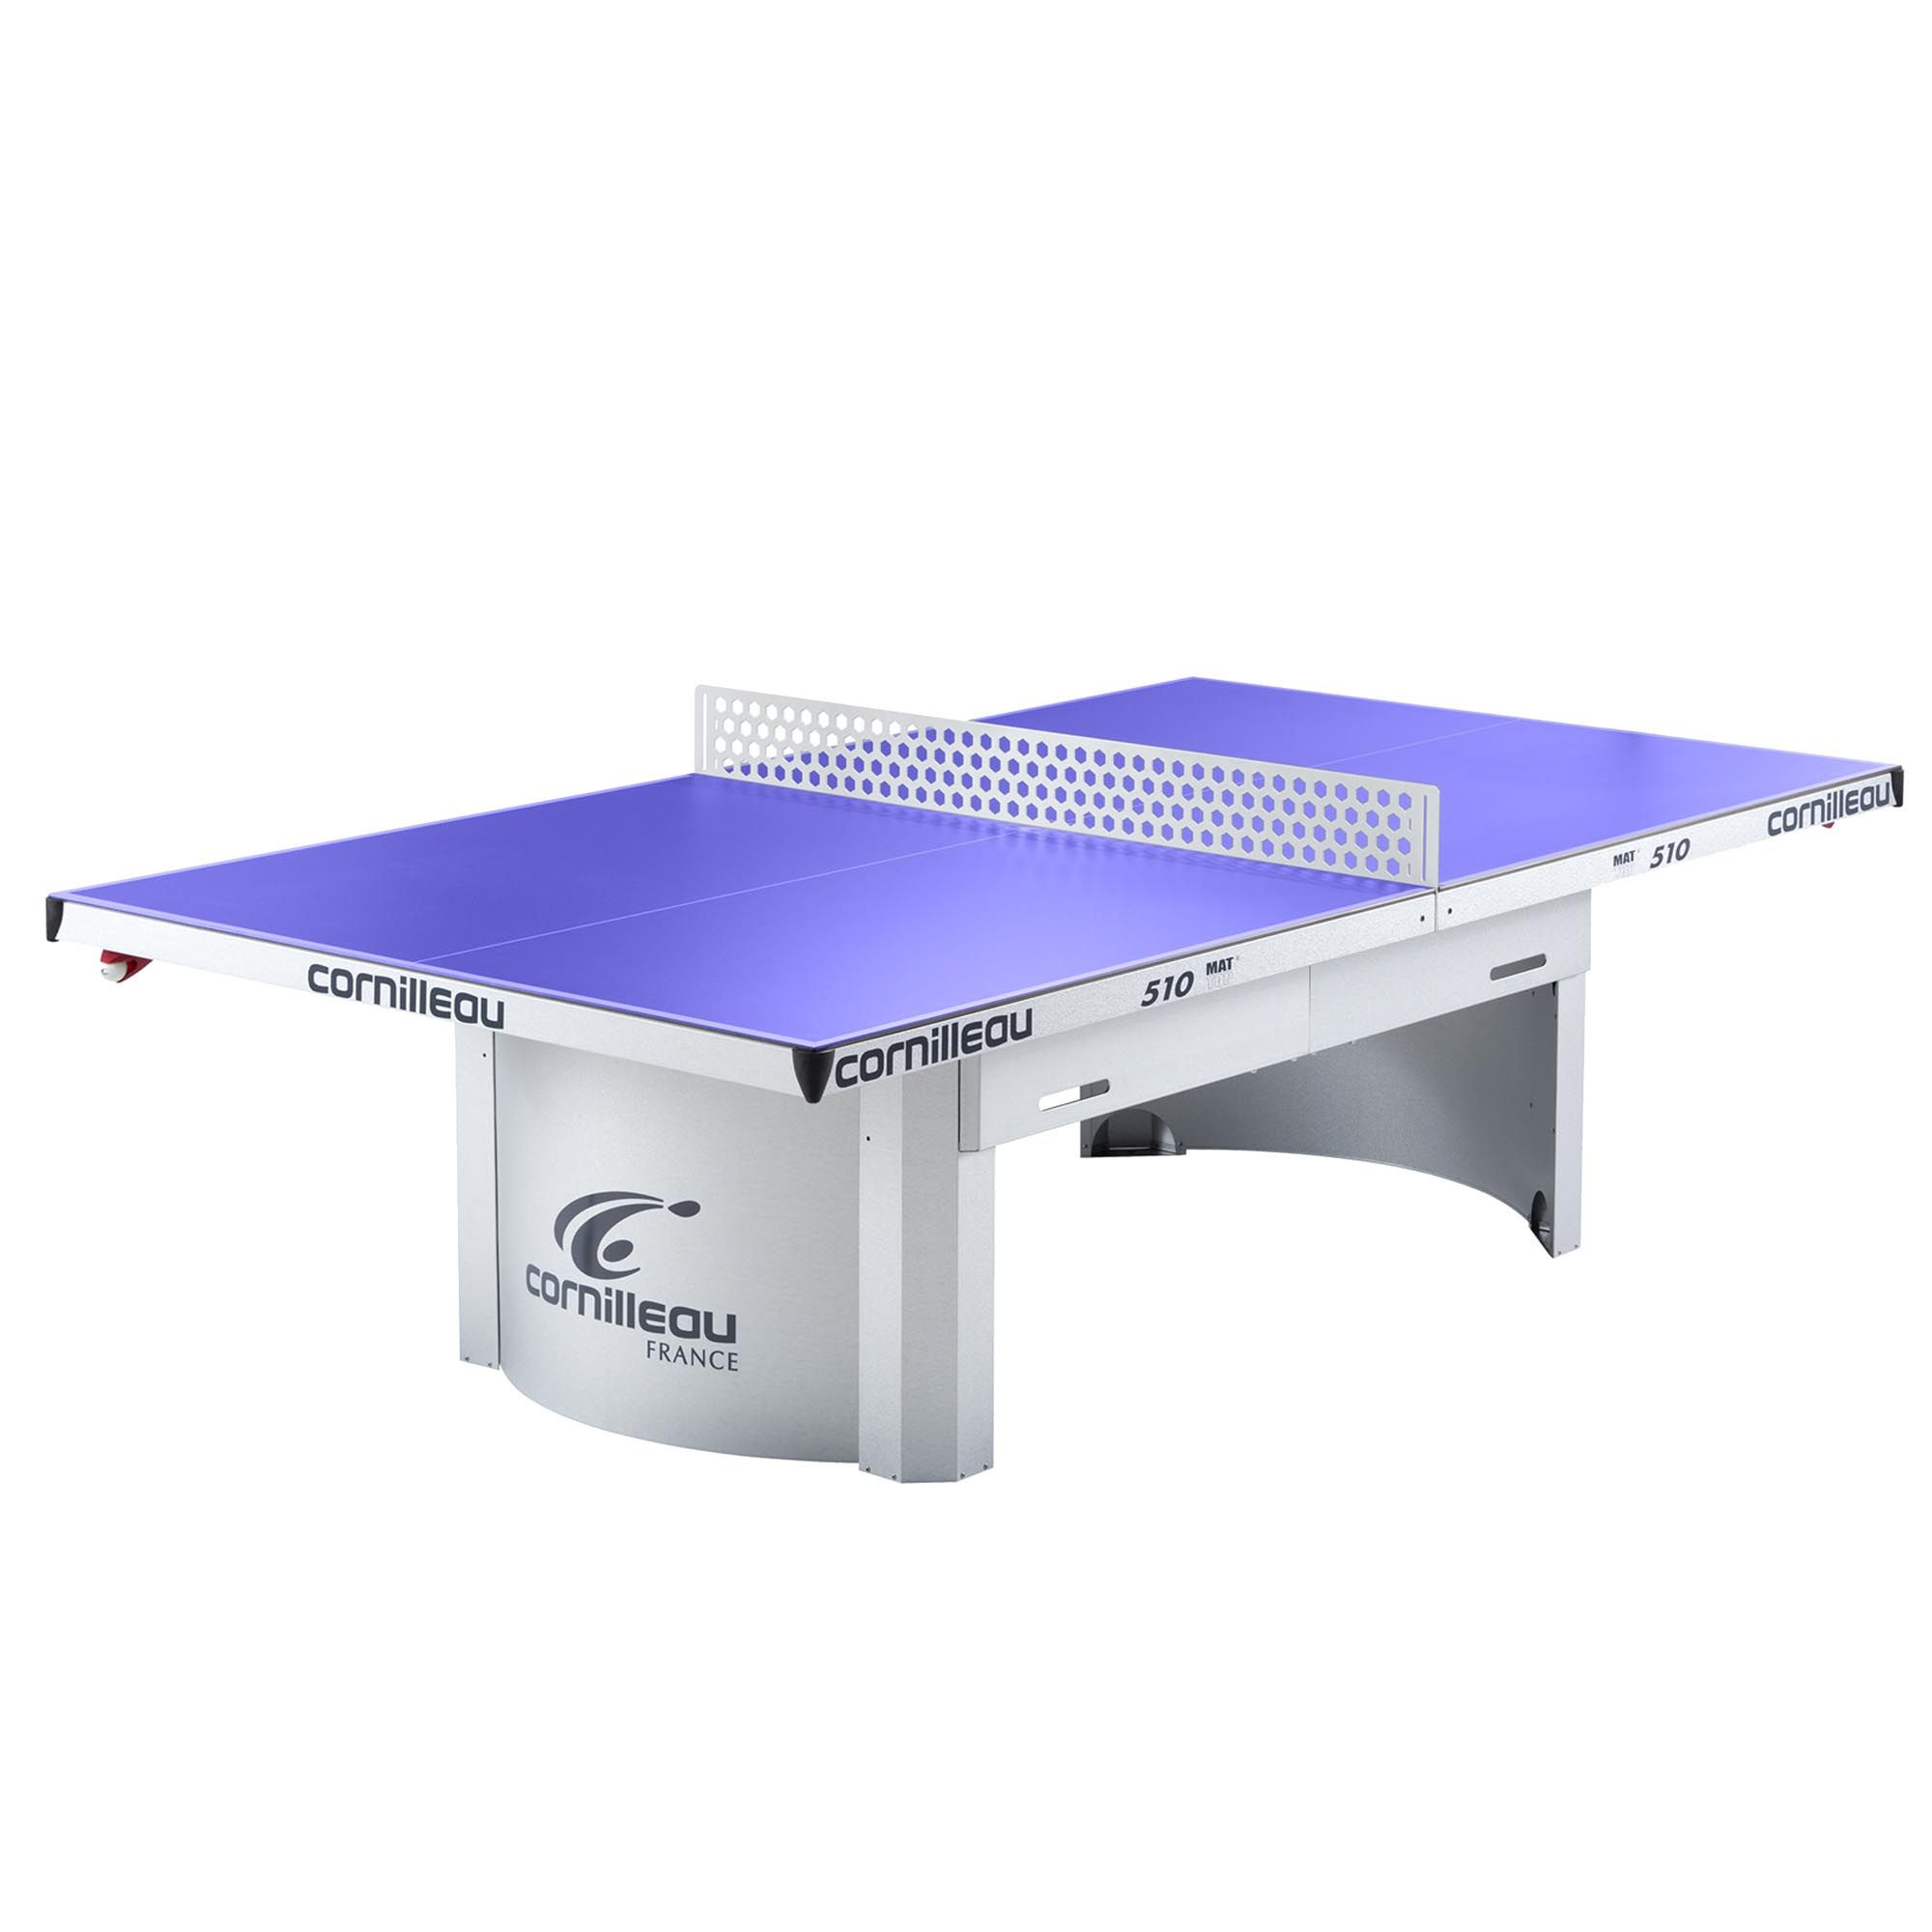 Cornilleau pro 510 static outdoor table tennis table - Weatherproof table tennis table ...